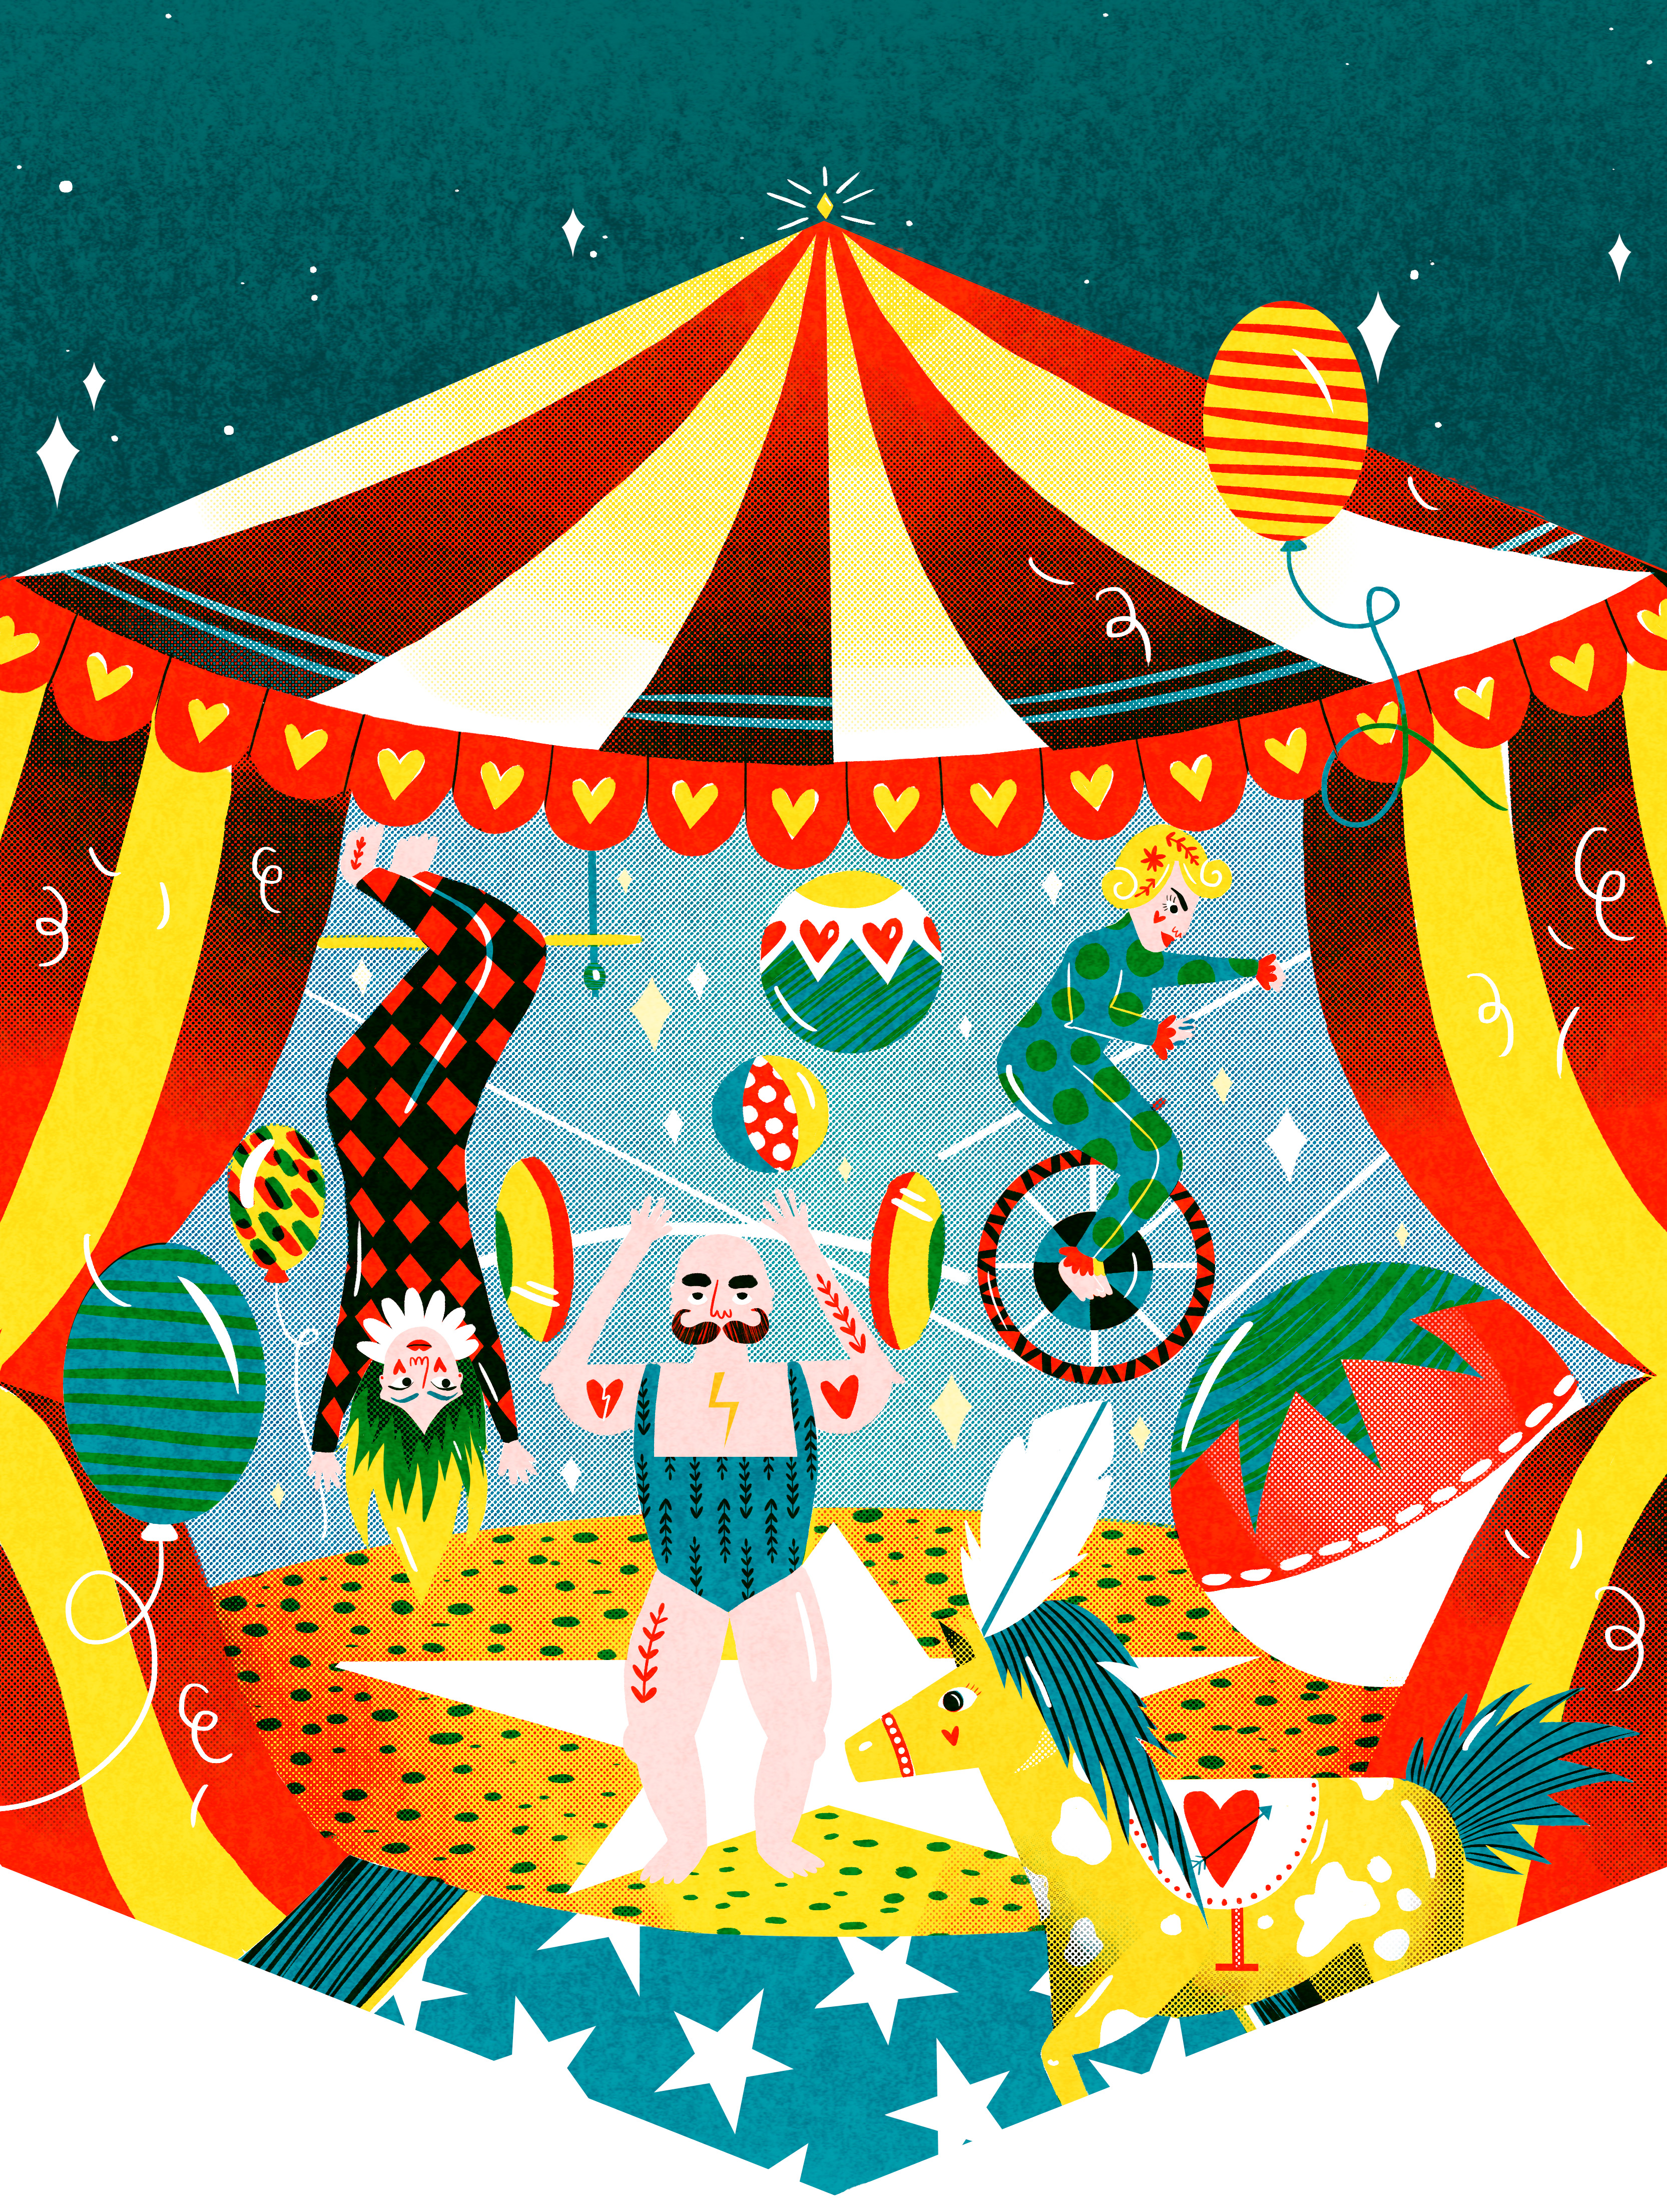 Fest mag cover illustration. Jas F